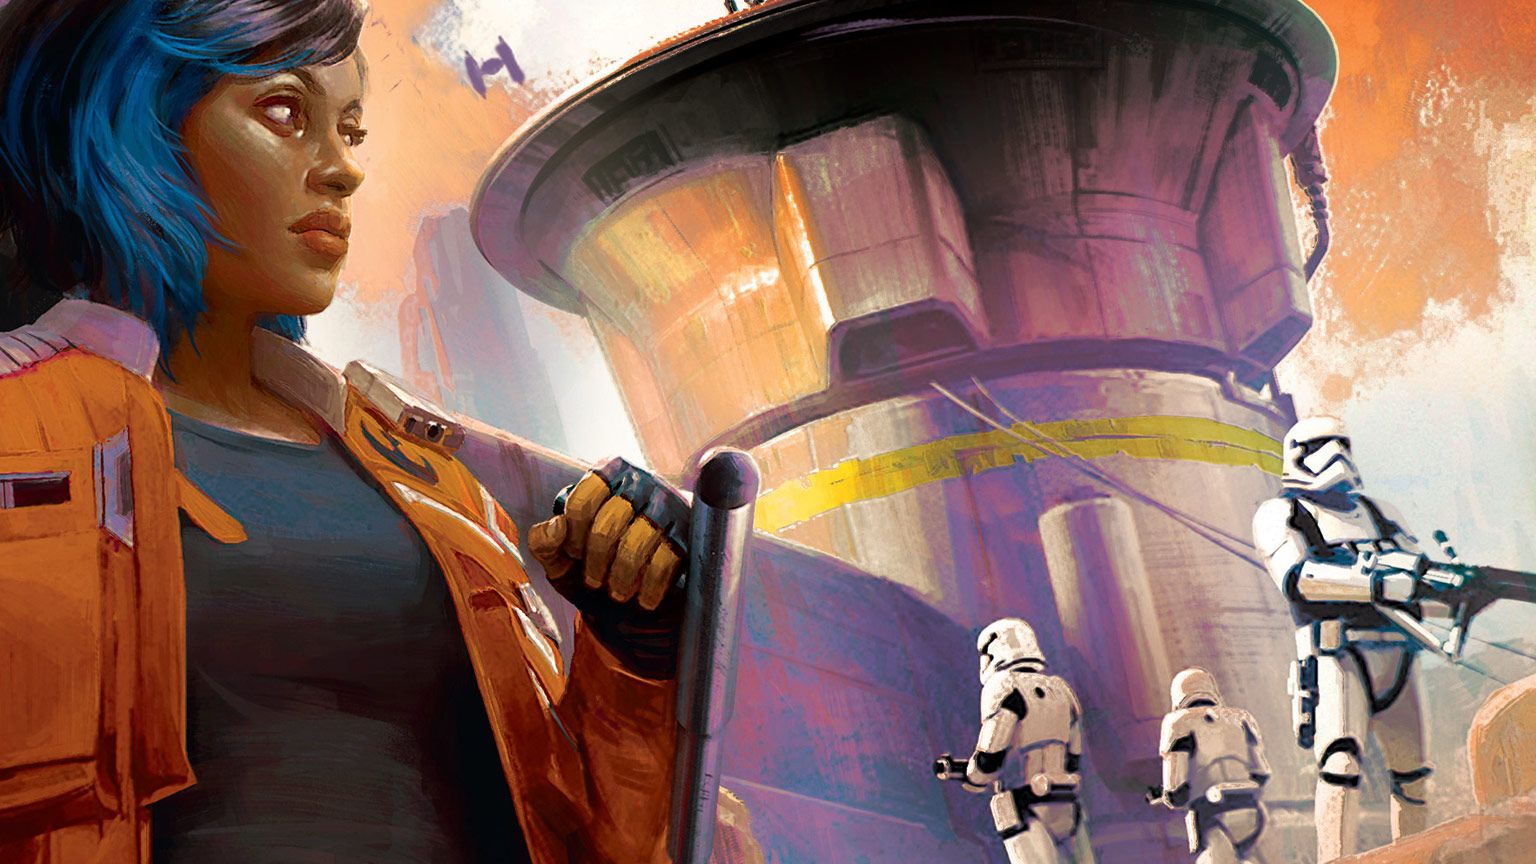 Vi Moradi on Batuu on the cover of Star Wars: Galaxy's Edge - Black Spire.